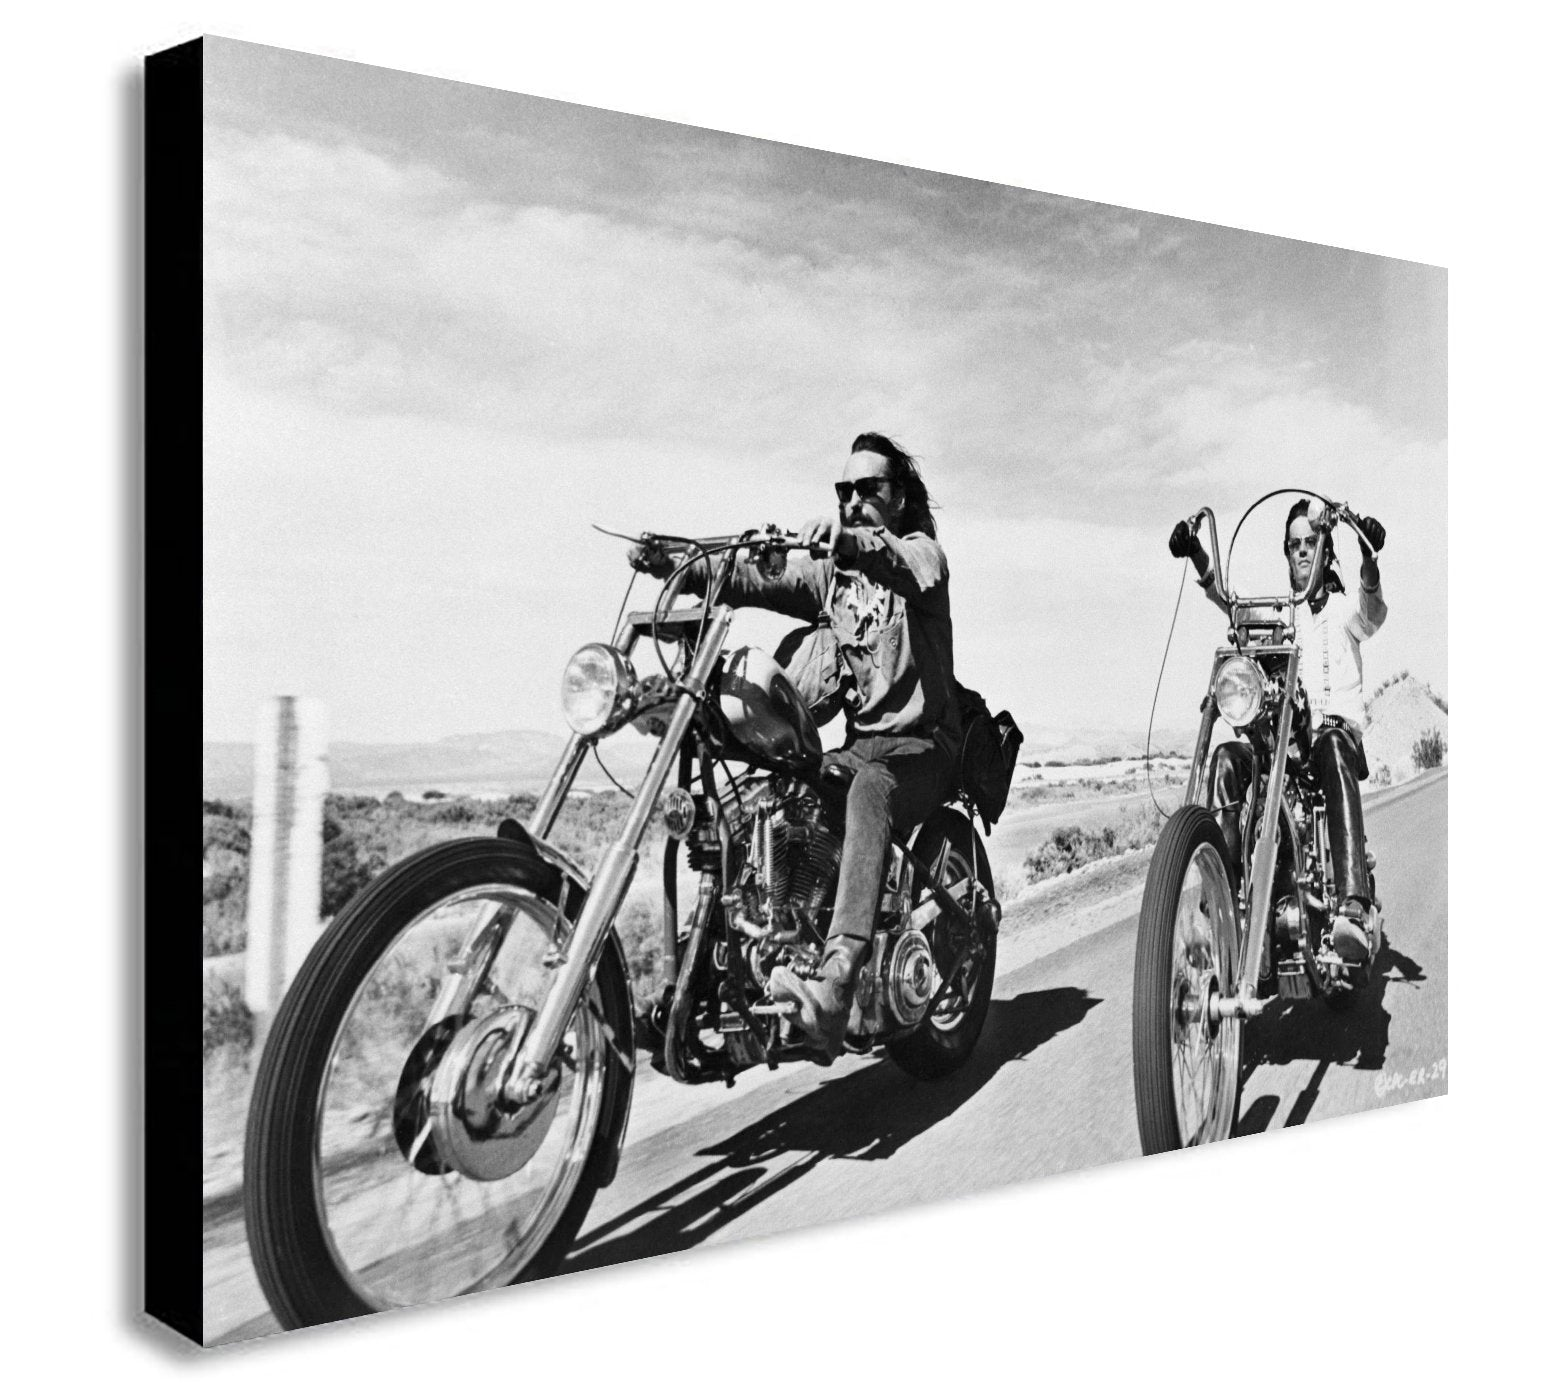 Easy Rider - 1969 Iconic Bike Movie - Canvas Wall Art - Various sizes